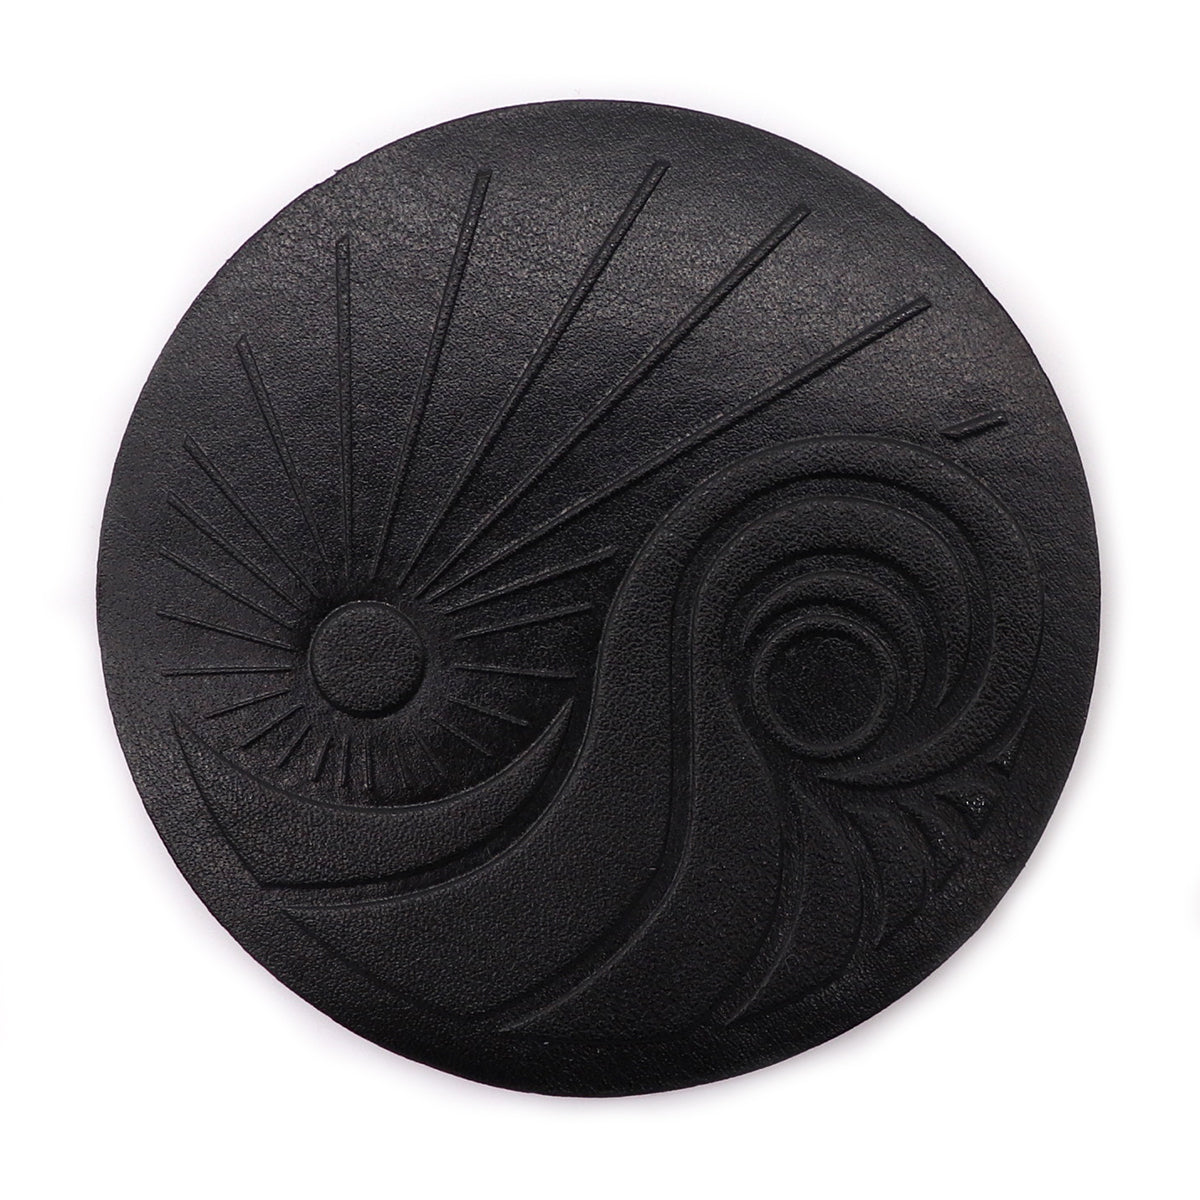 Rubber black patch exclusive design of San Diego Trading Company logo. Features sun rays and wavs with a yin yang for balance and complimentary in all blackout black patch. Embossed patch only Sold by SDTrading Co.